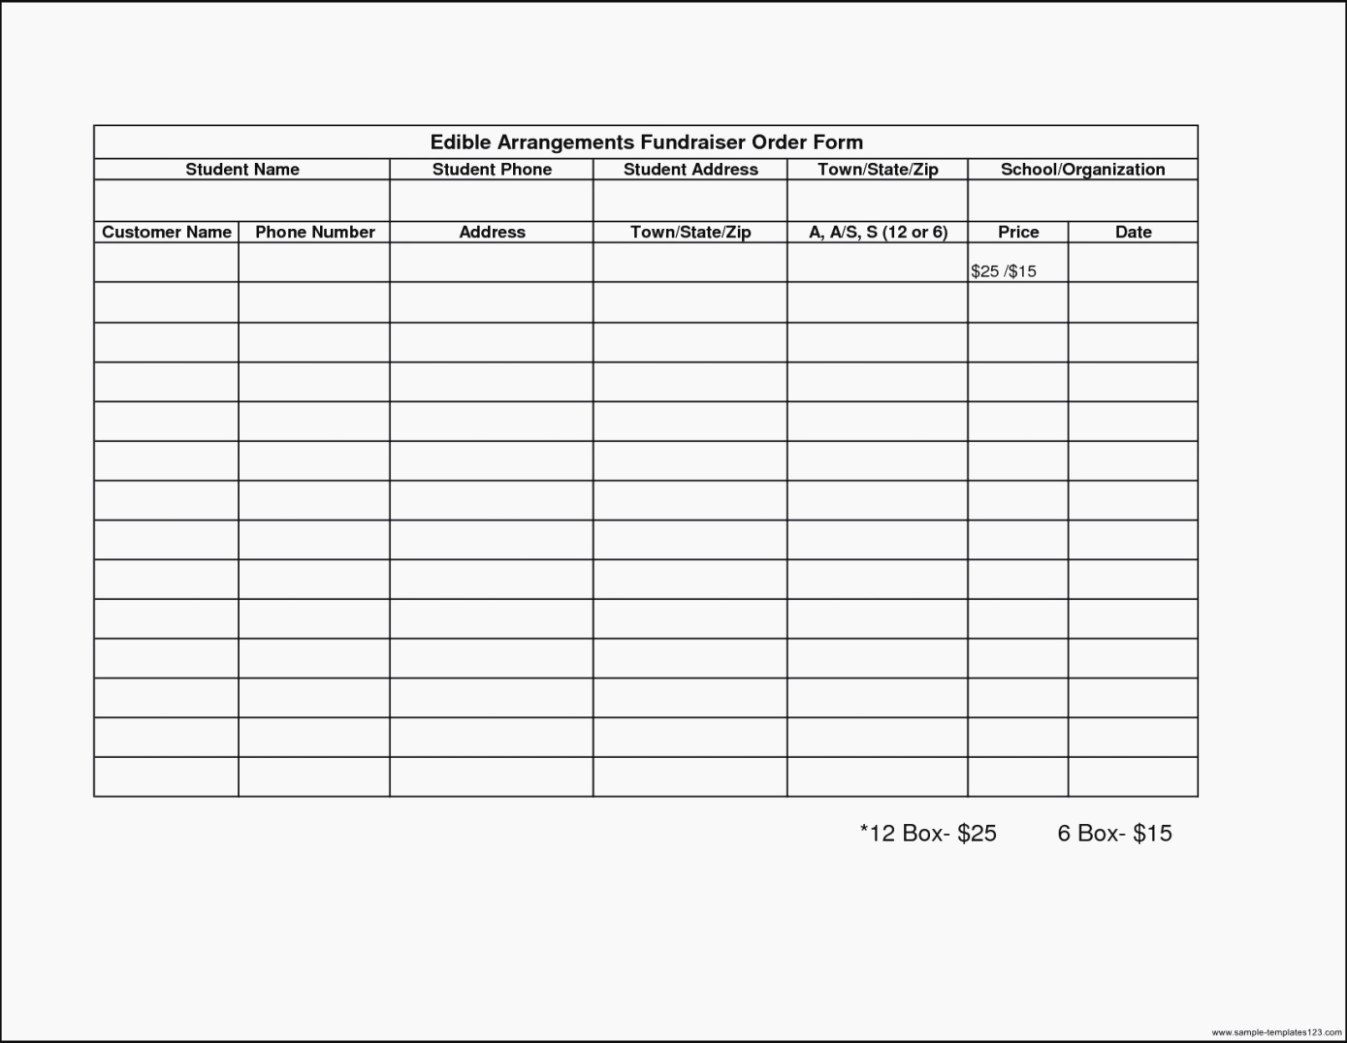 Fundraising order form Templates Unique 12 Ideas to organize Your Own Fundraiser